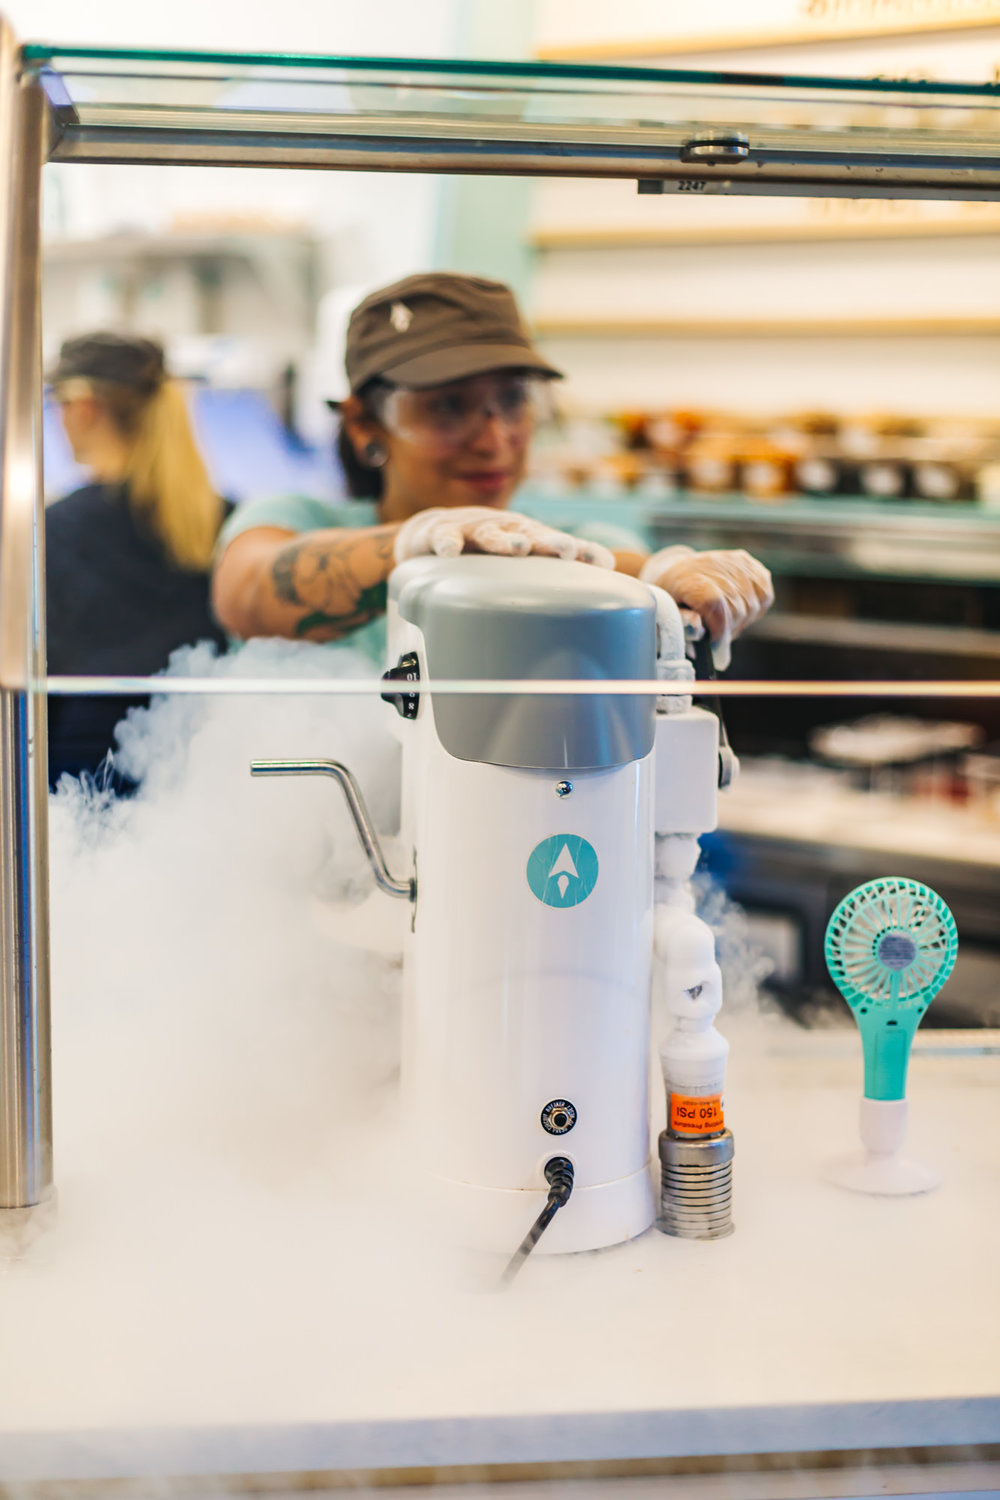 Liquid nitrogen ice cream made-to-order at Astro Ice cream